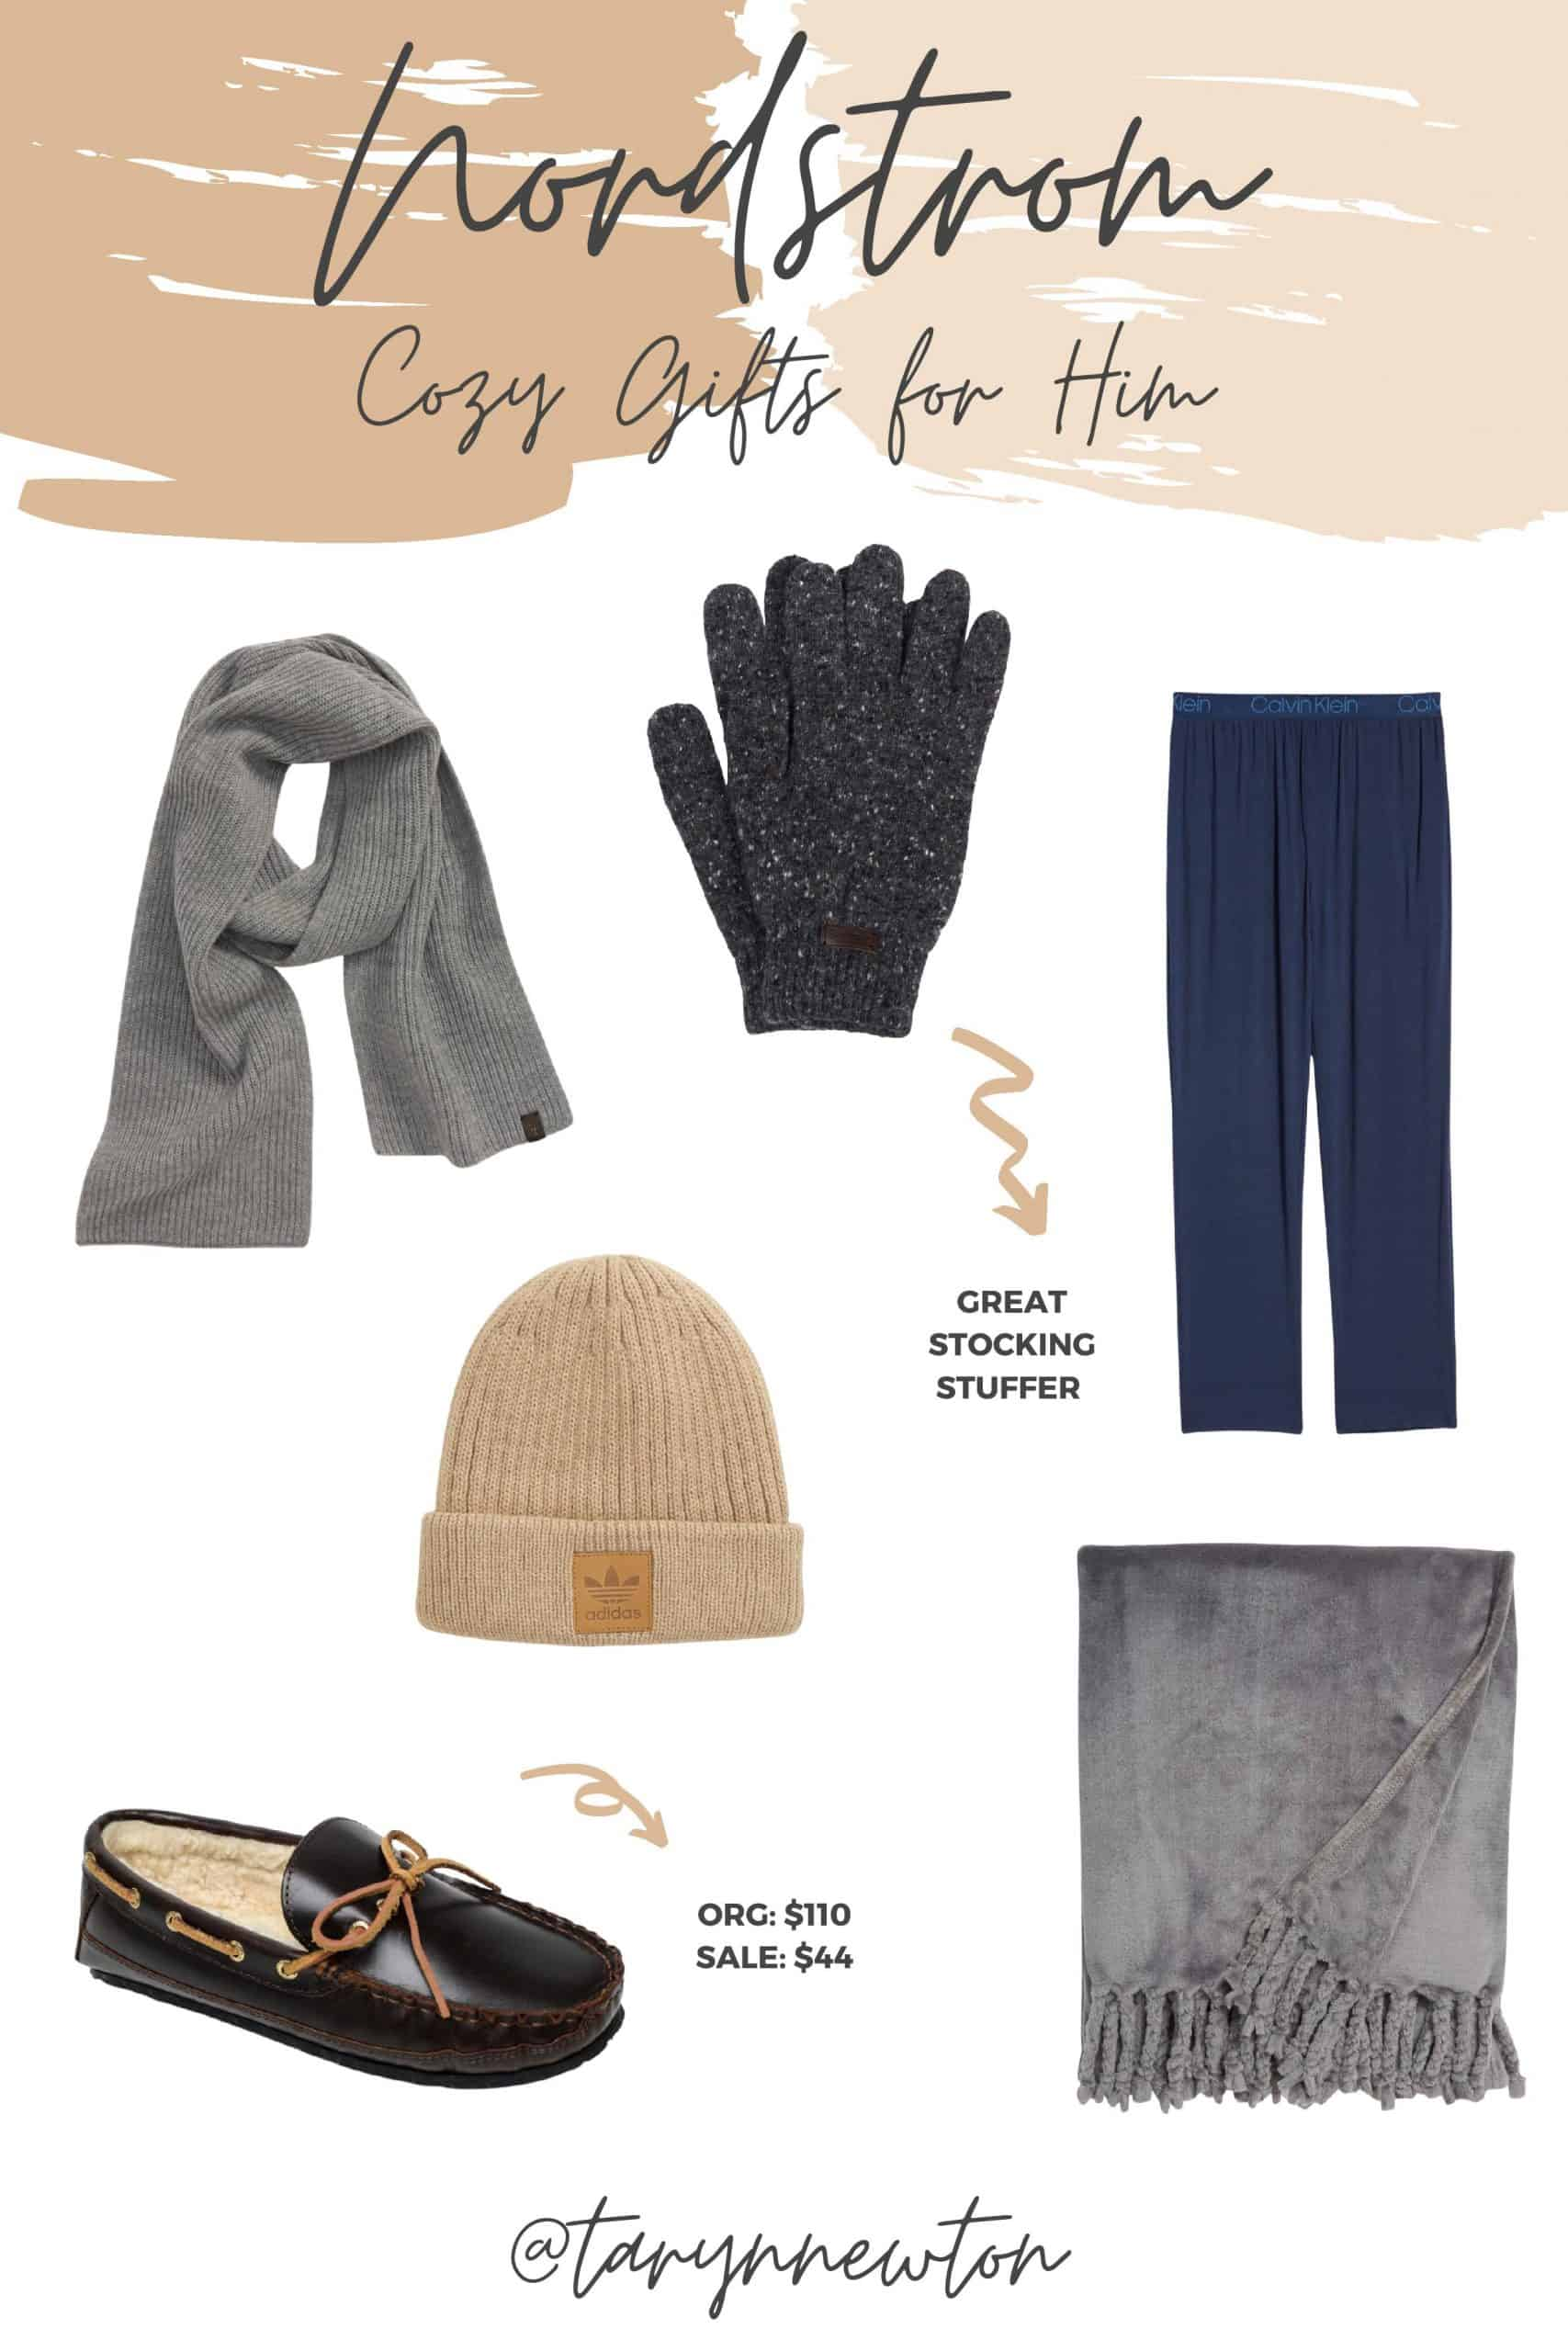 Cozy Gifts by popular Dallas life and style blog, Glamorous Versatility: collage image of a grey scarf, grey glove, navy lounge pants, Adidas bean, bliss plush tassel blanket, leather moccasin slippers.